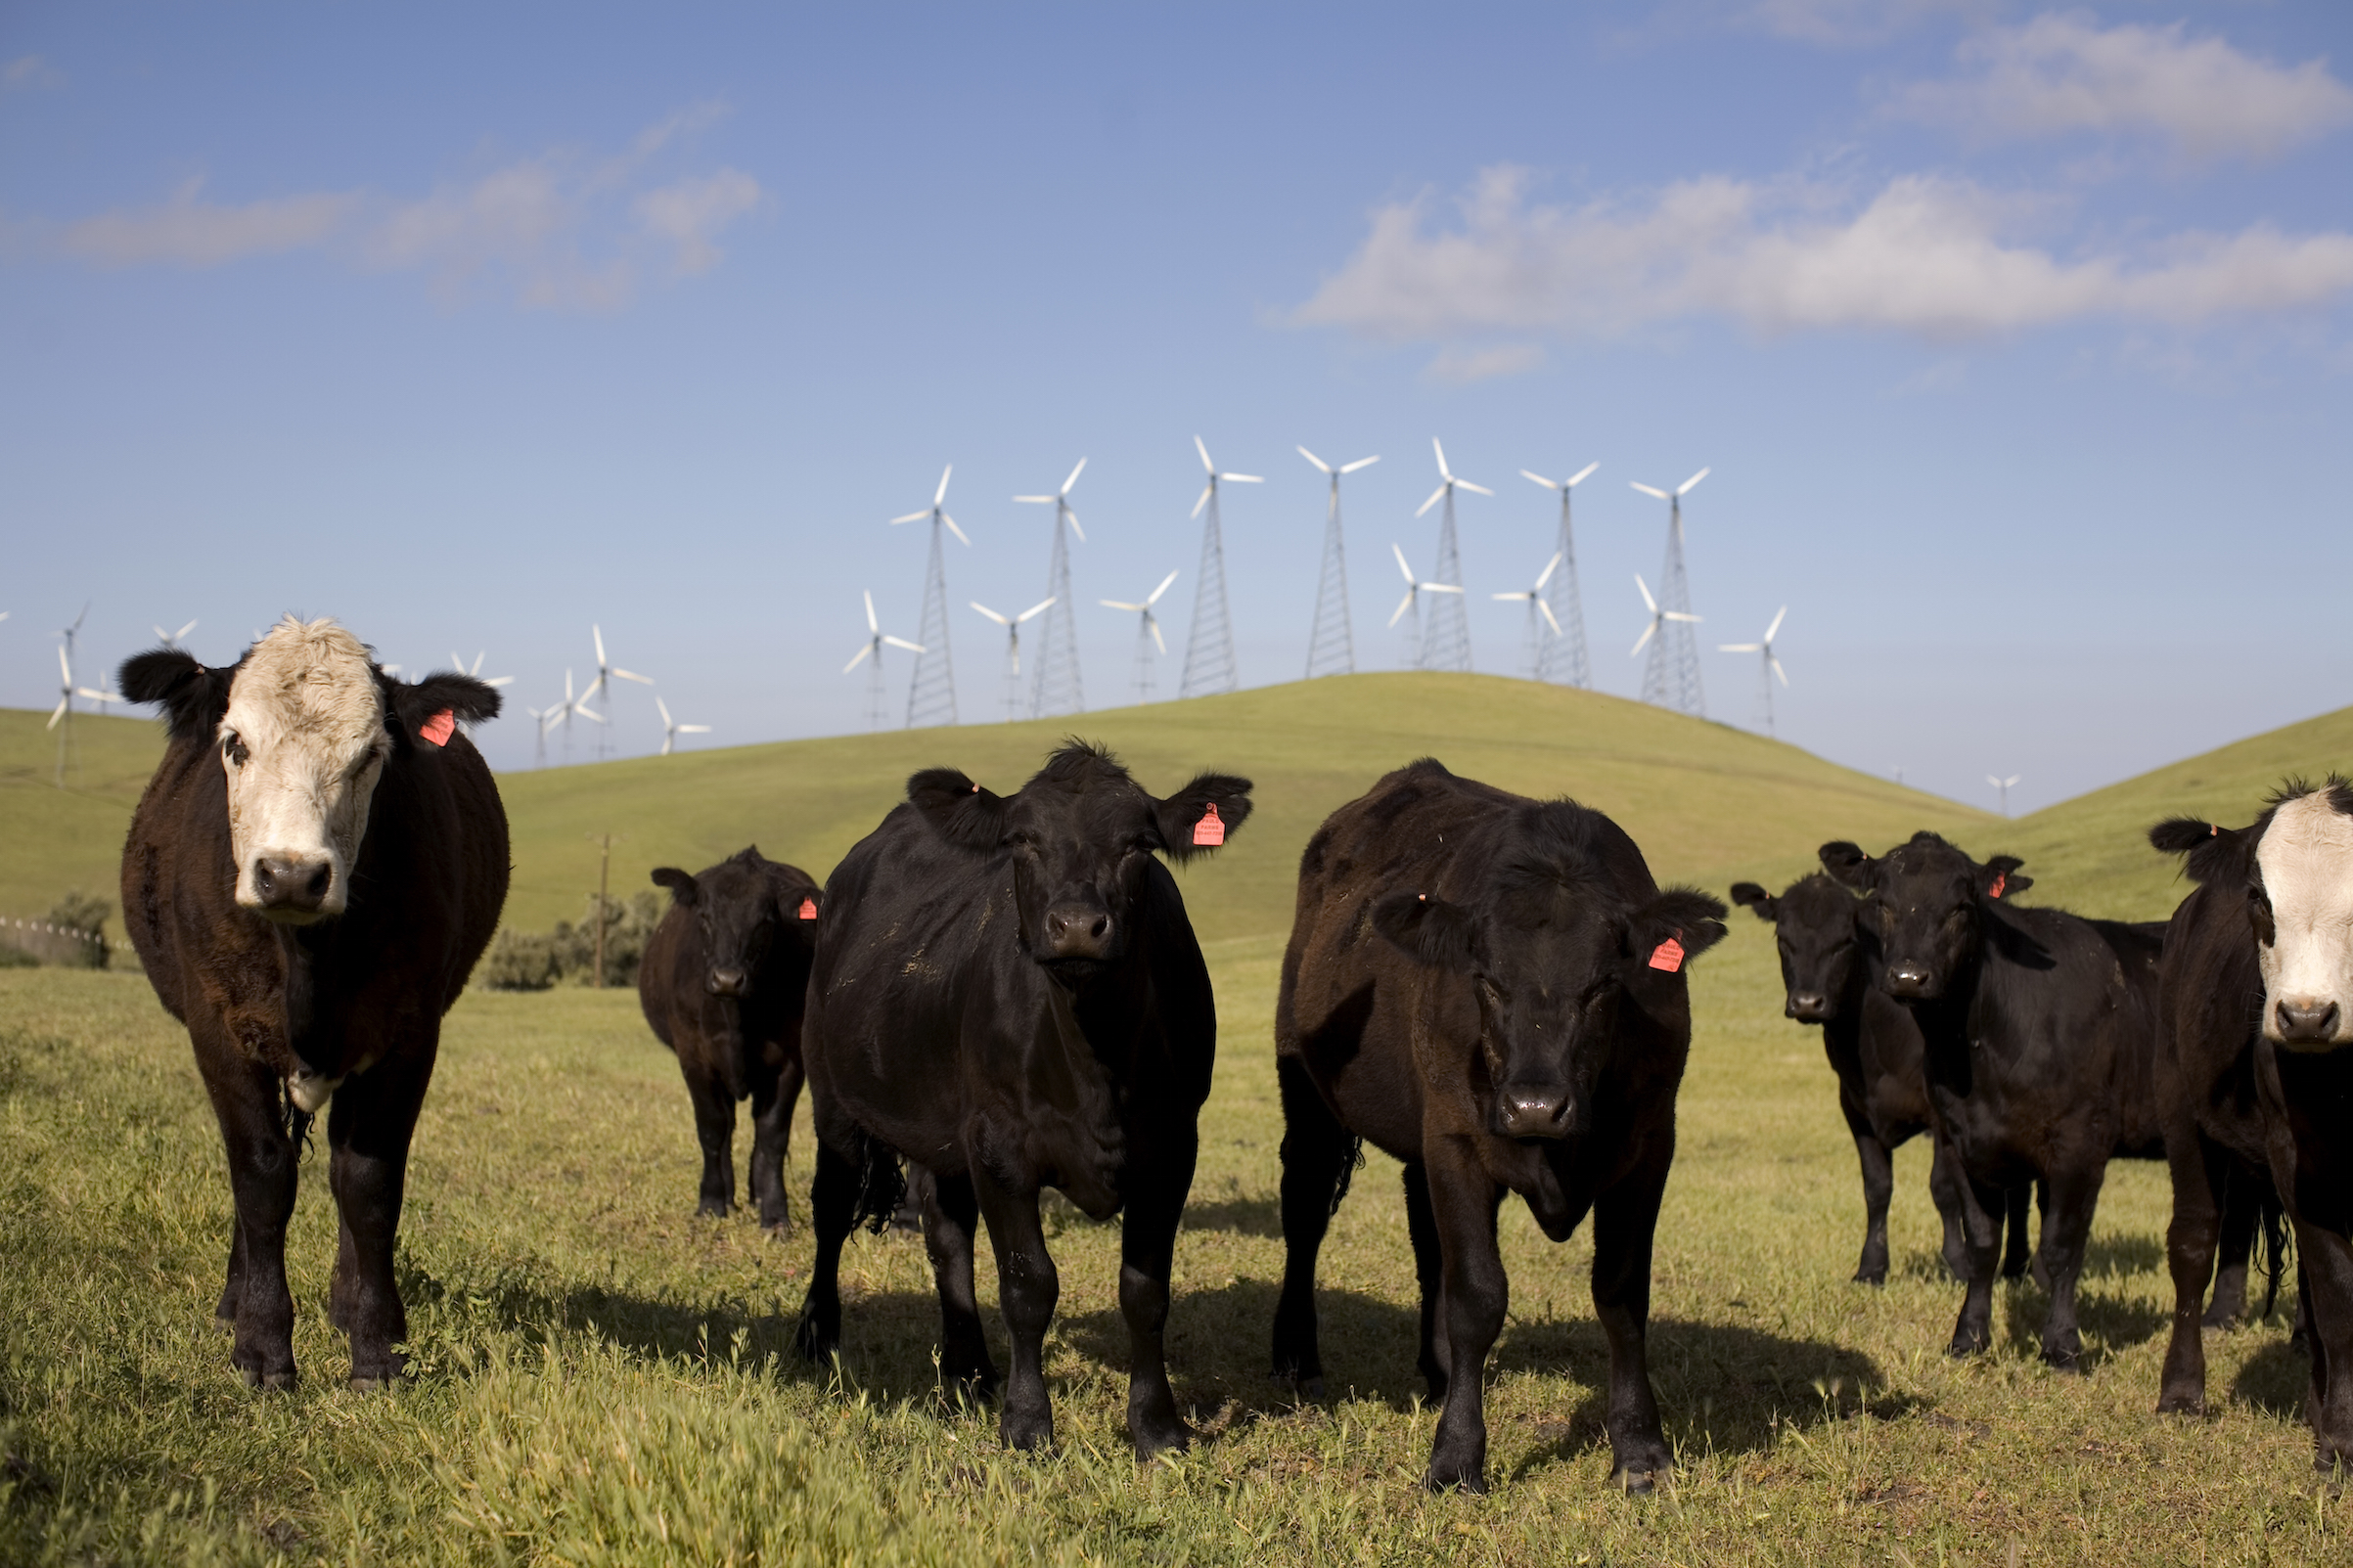 Beef cattle graze on a hillside below wind-power towers 50 miles east of San Francisco on April 14, 2008